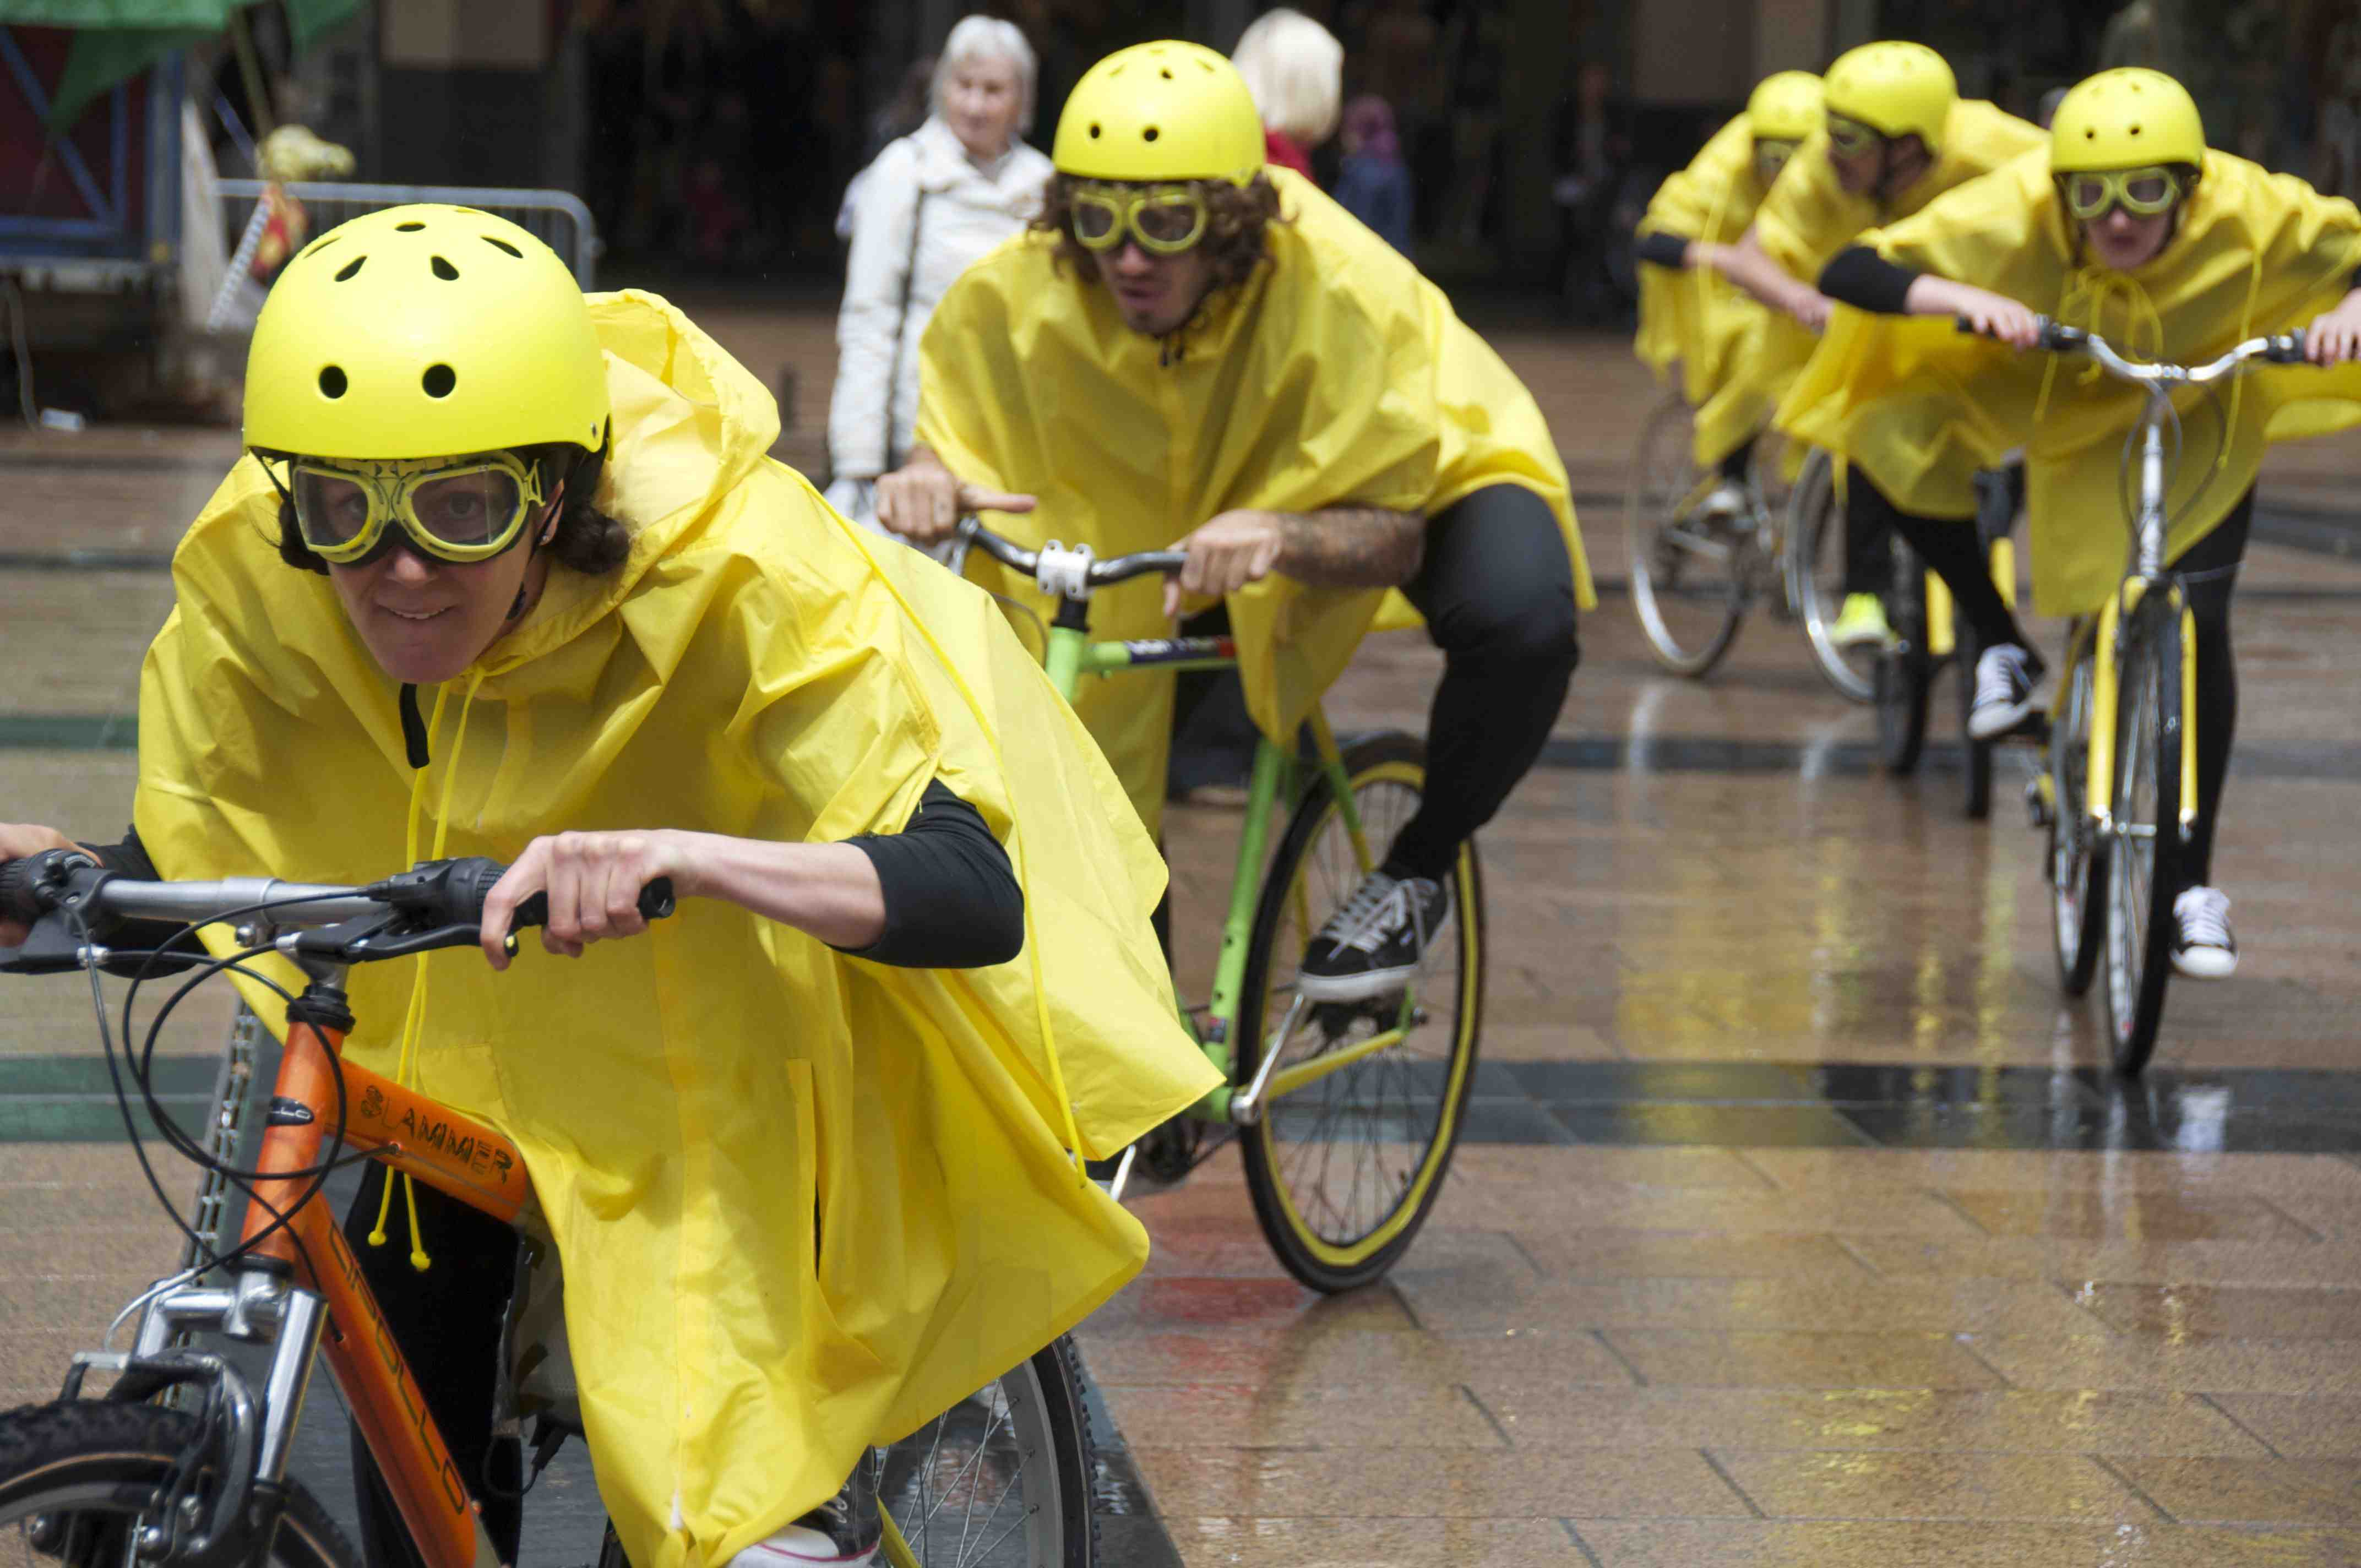 Performers in yellow rain macs, helmets and goggles hunch low over their bike handlebars cycling towards the camera